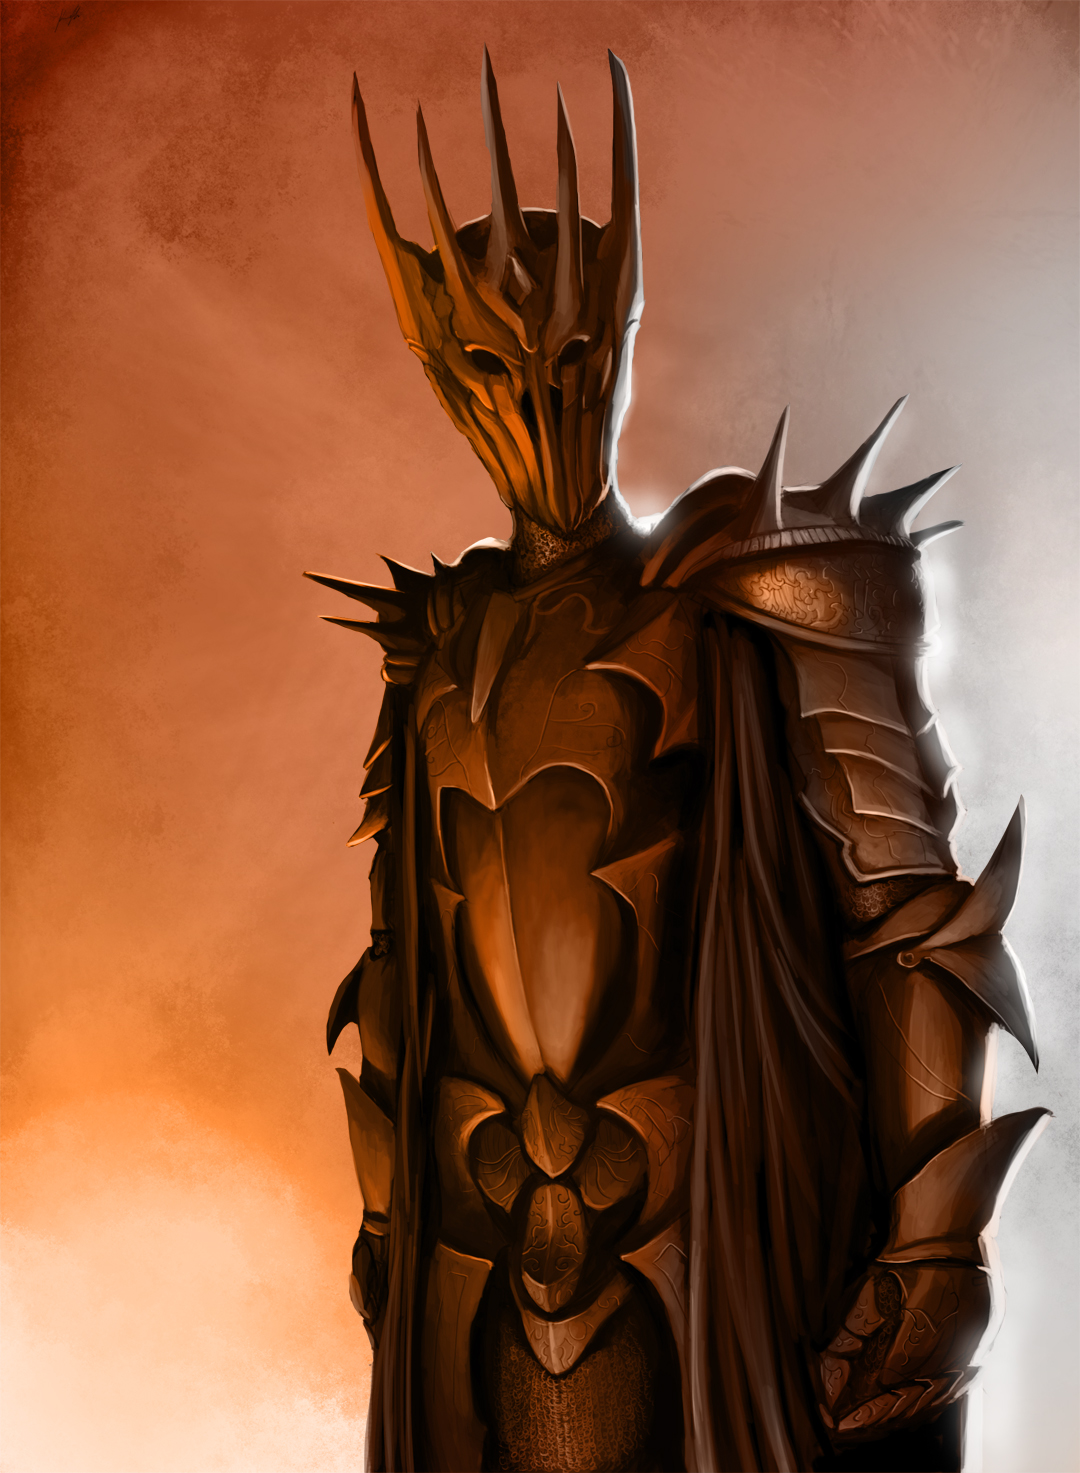 Dark Lord Sauron by SpartanK42